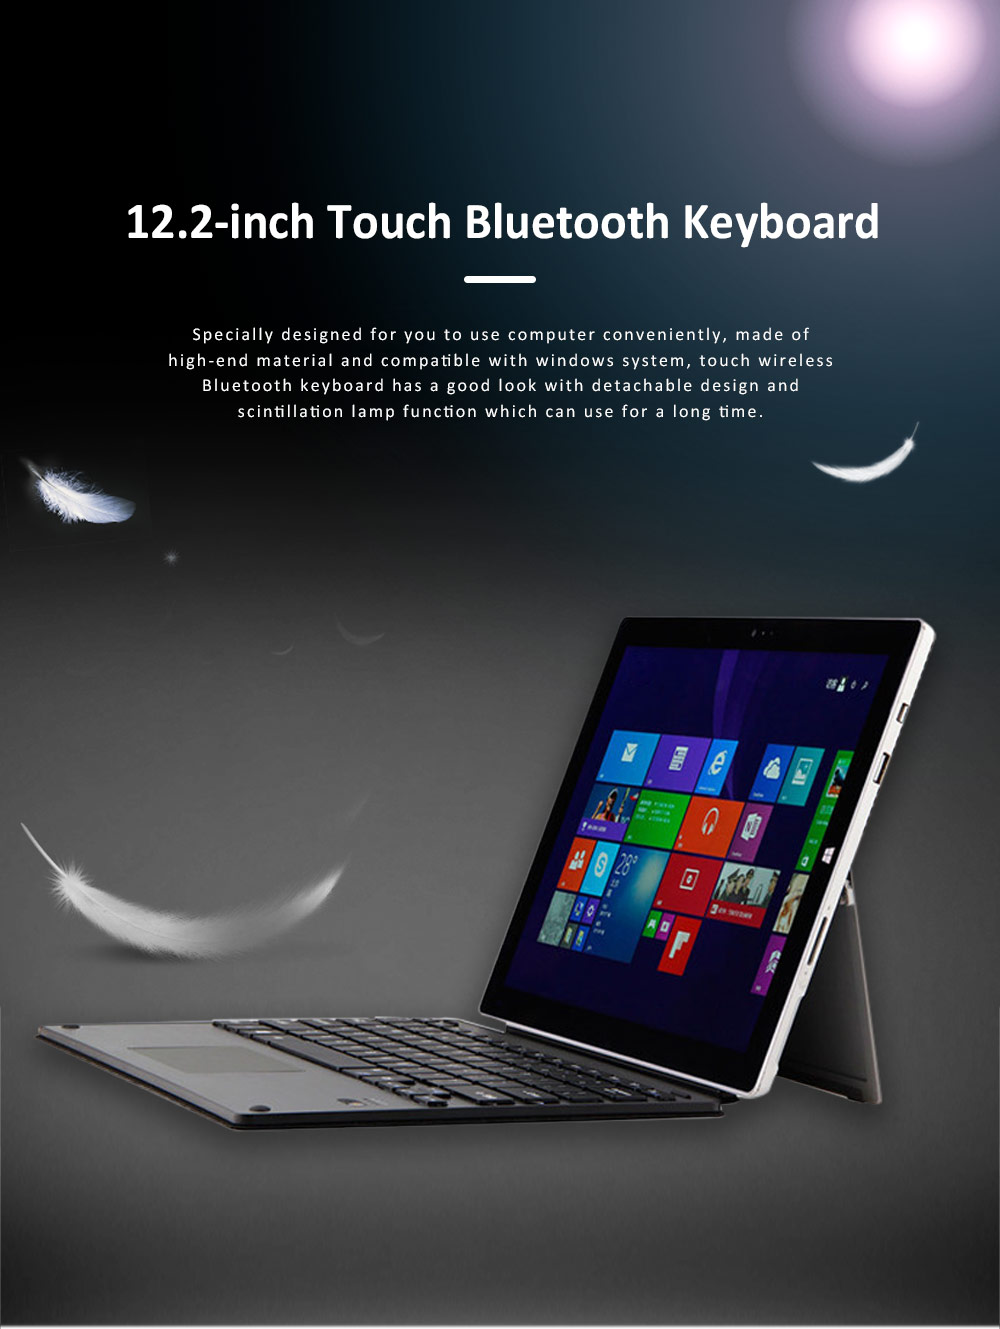 Touch Bluetooth Keyboard with Detachable Design, Scintillation Lamp Ultra Slim Keyboard for Microsoft Surface Pro 3, Pro4, 12.2 inch  0